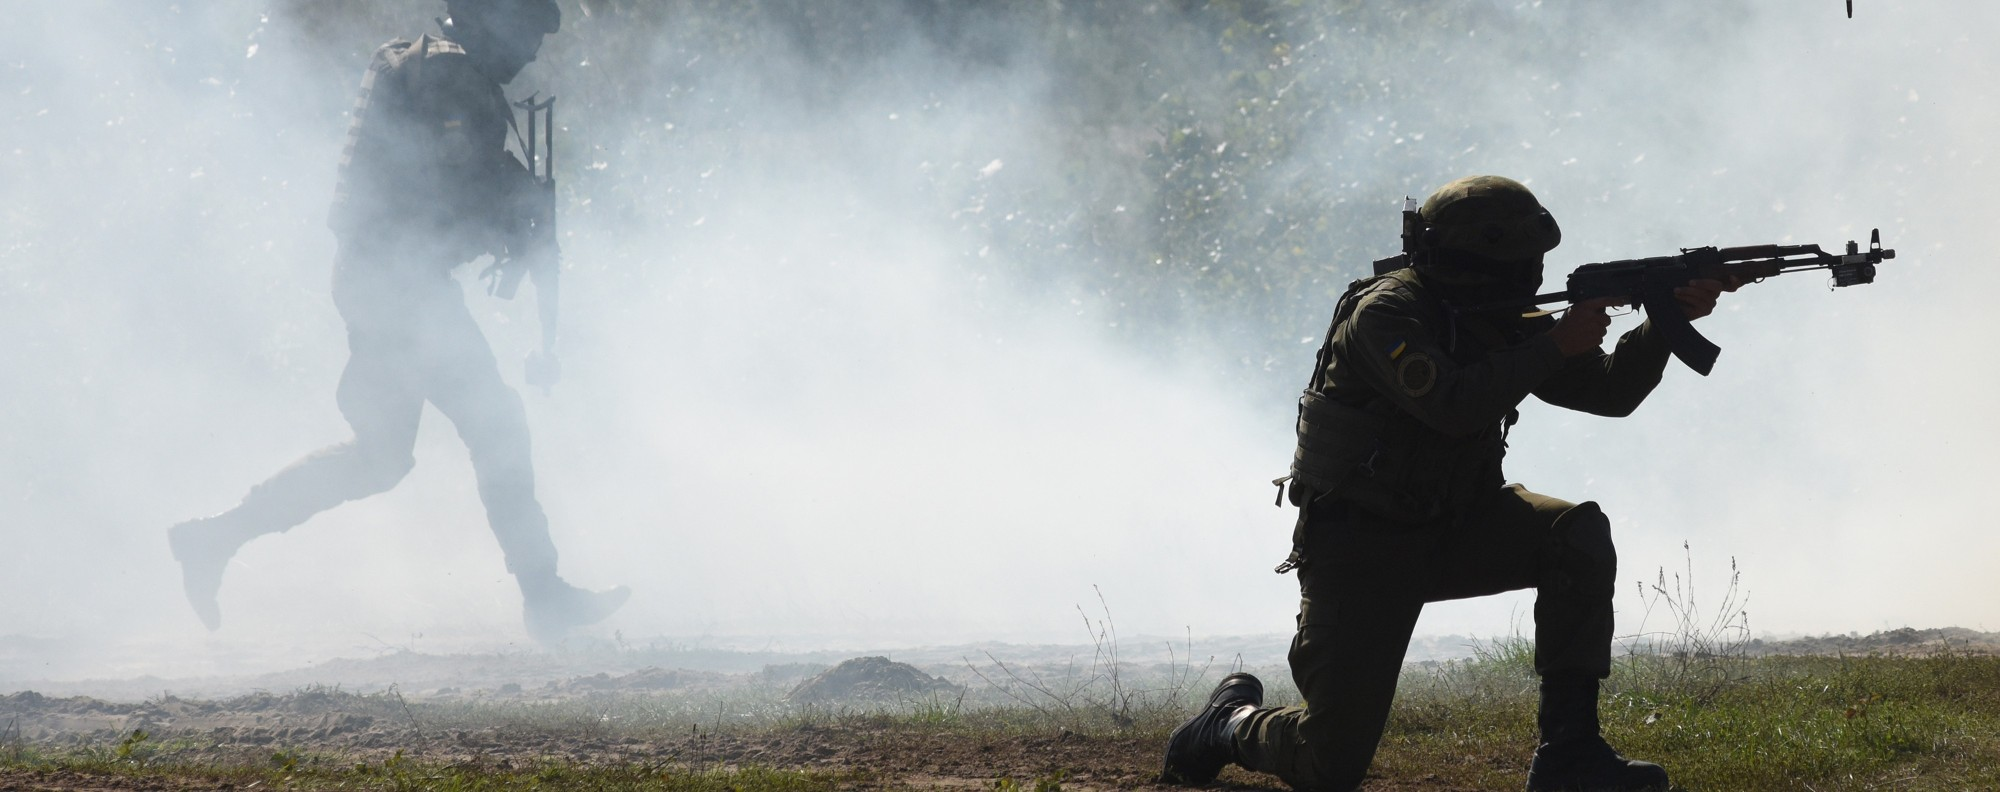 A training exercise by Ukrainian soldiers. Photo: AFP